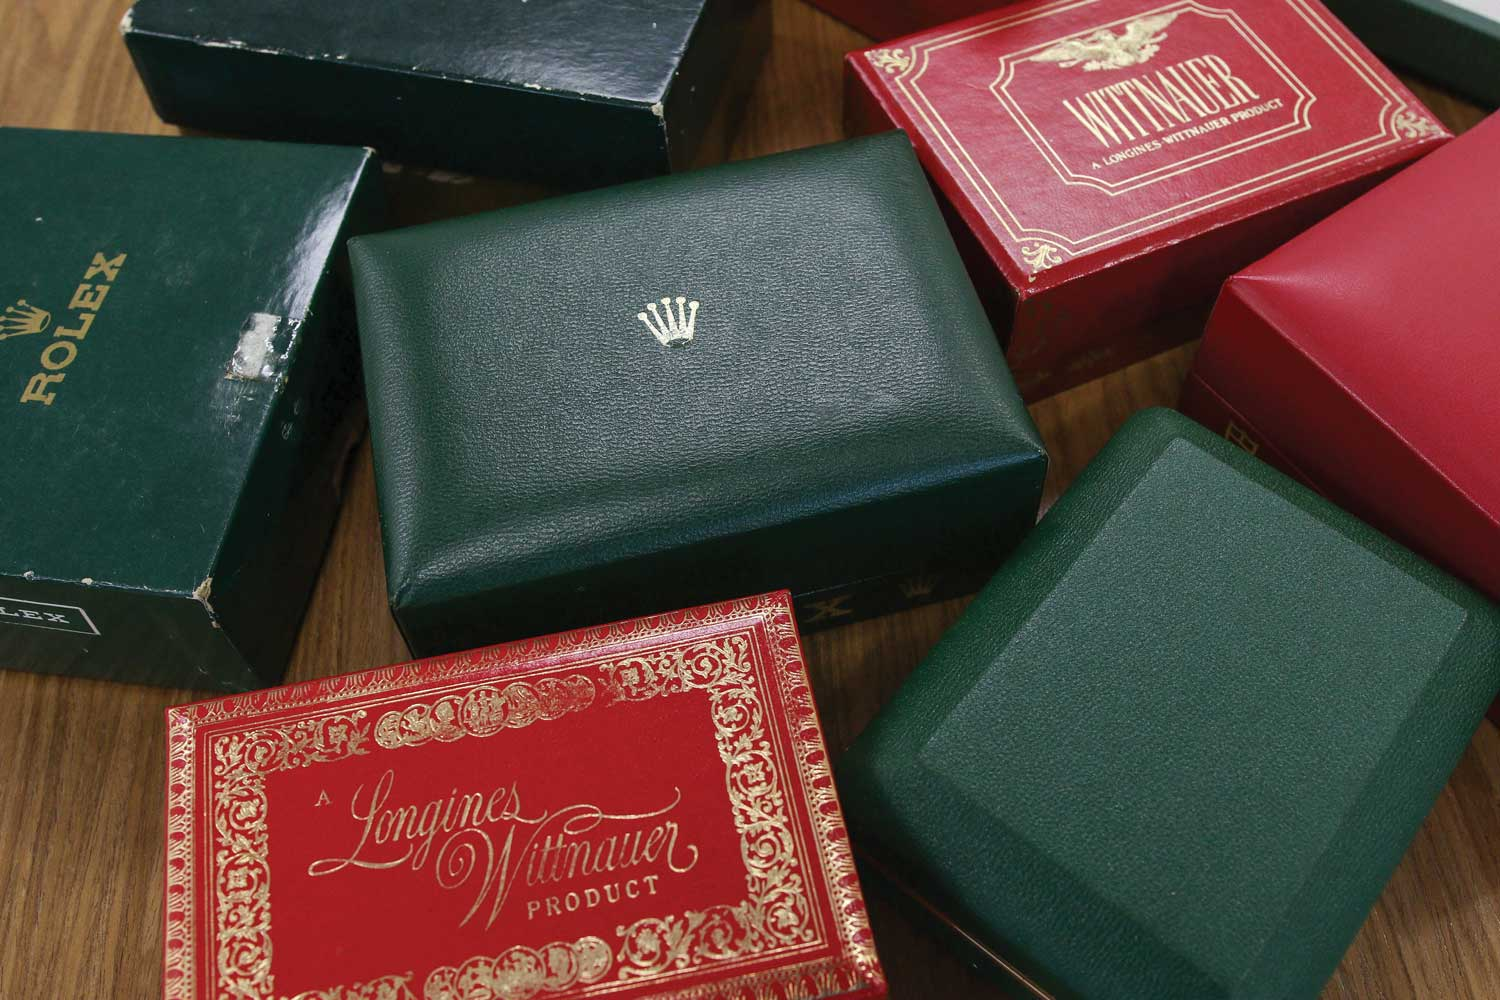 Watch boxes in Lester Ng's collection (Image © Revolution)